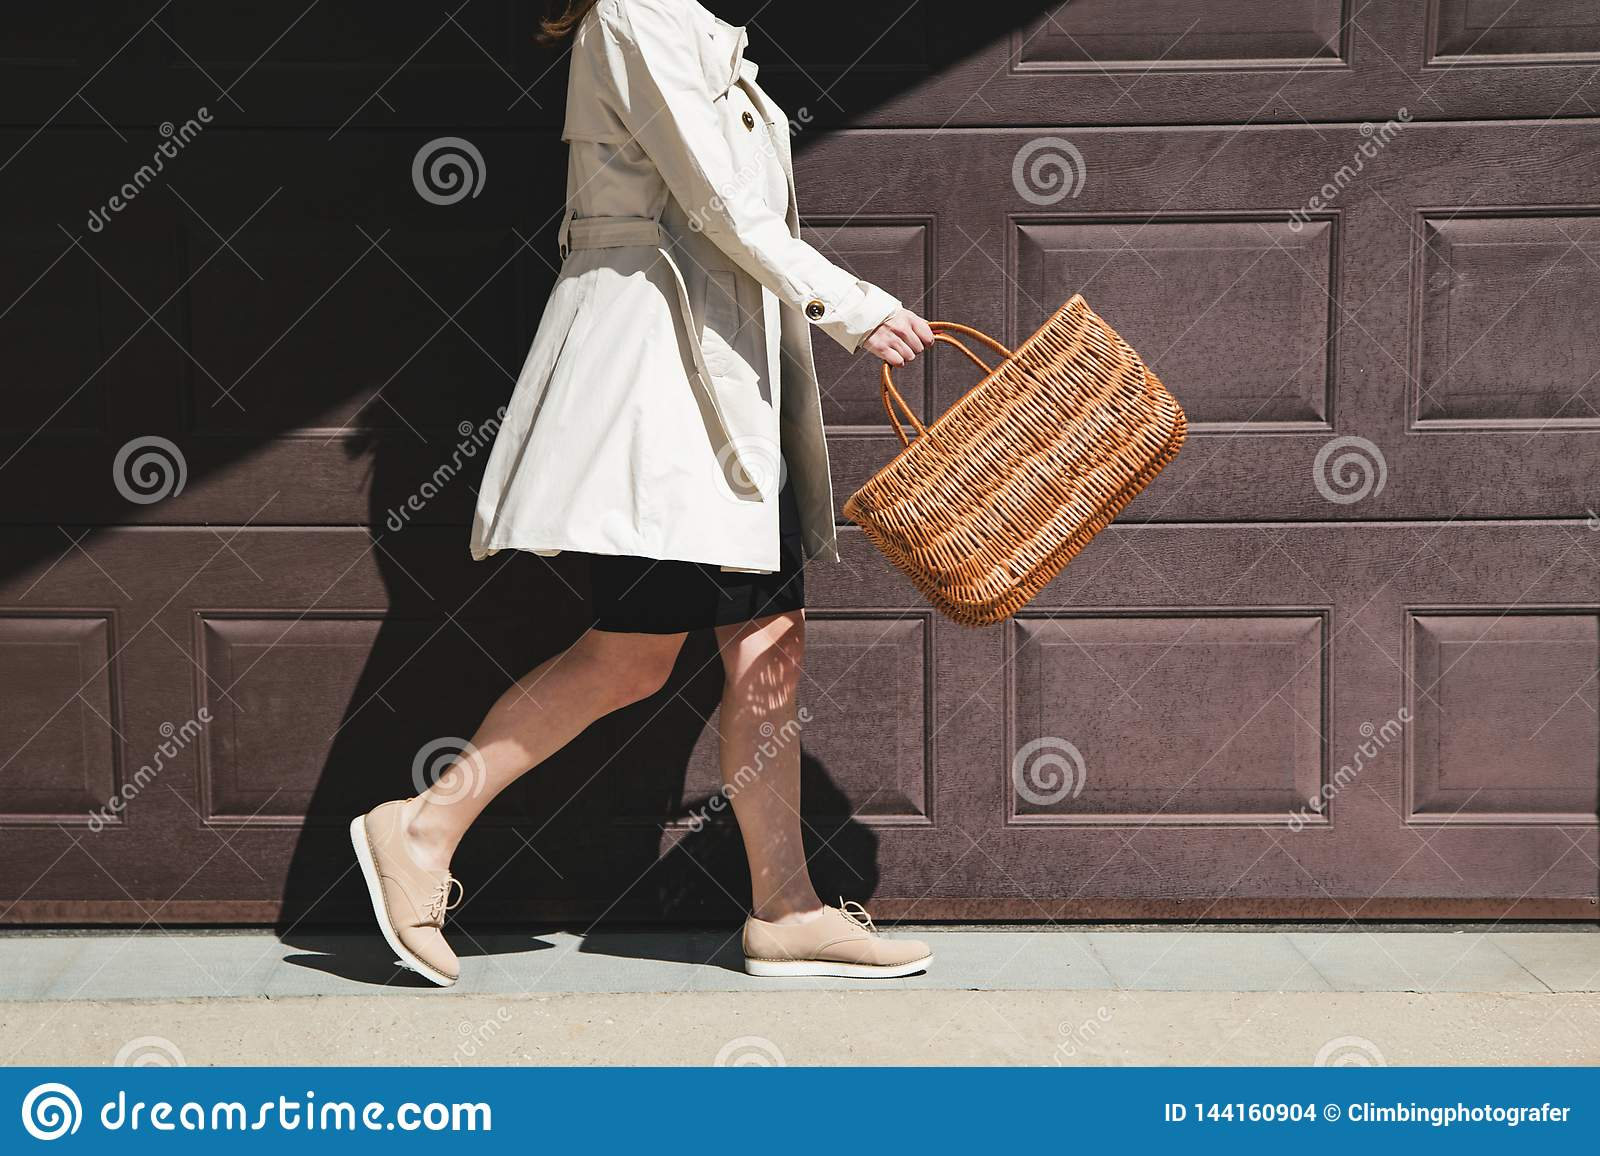 Girl walking with shopping bag in the street